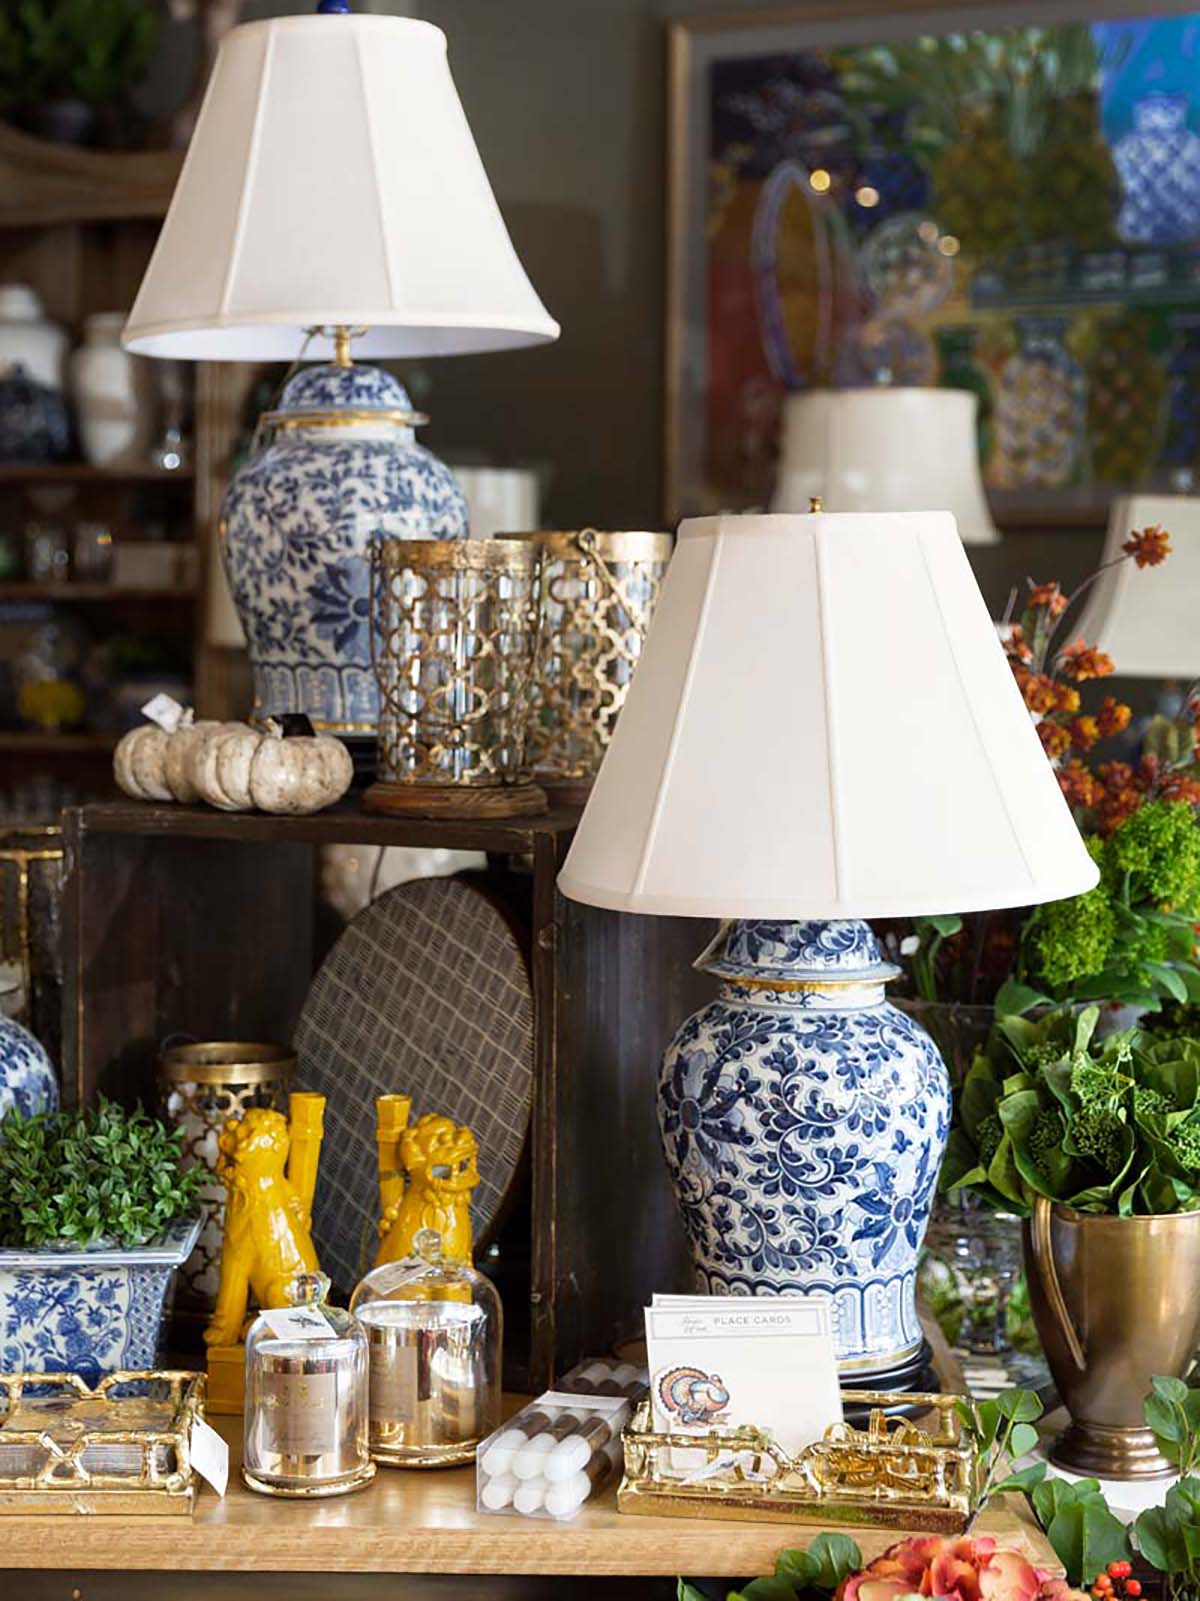 Shop Our Editors 13 Favorite Locally Owned Home Decor Shops 5280